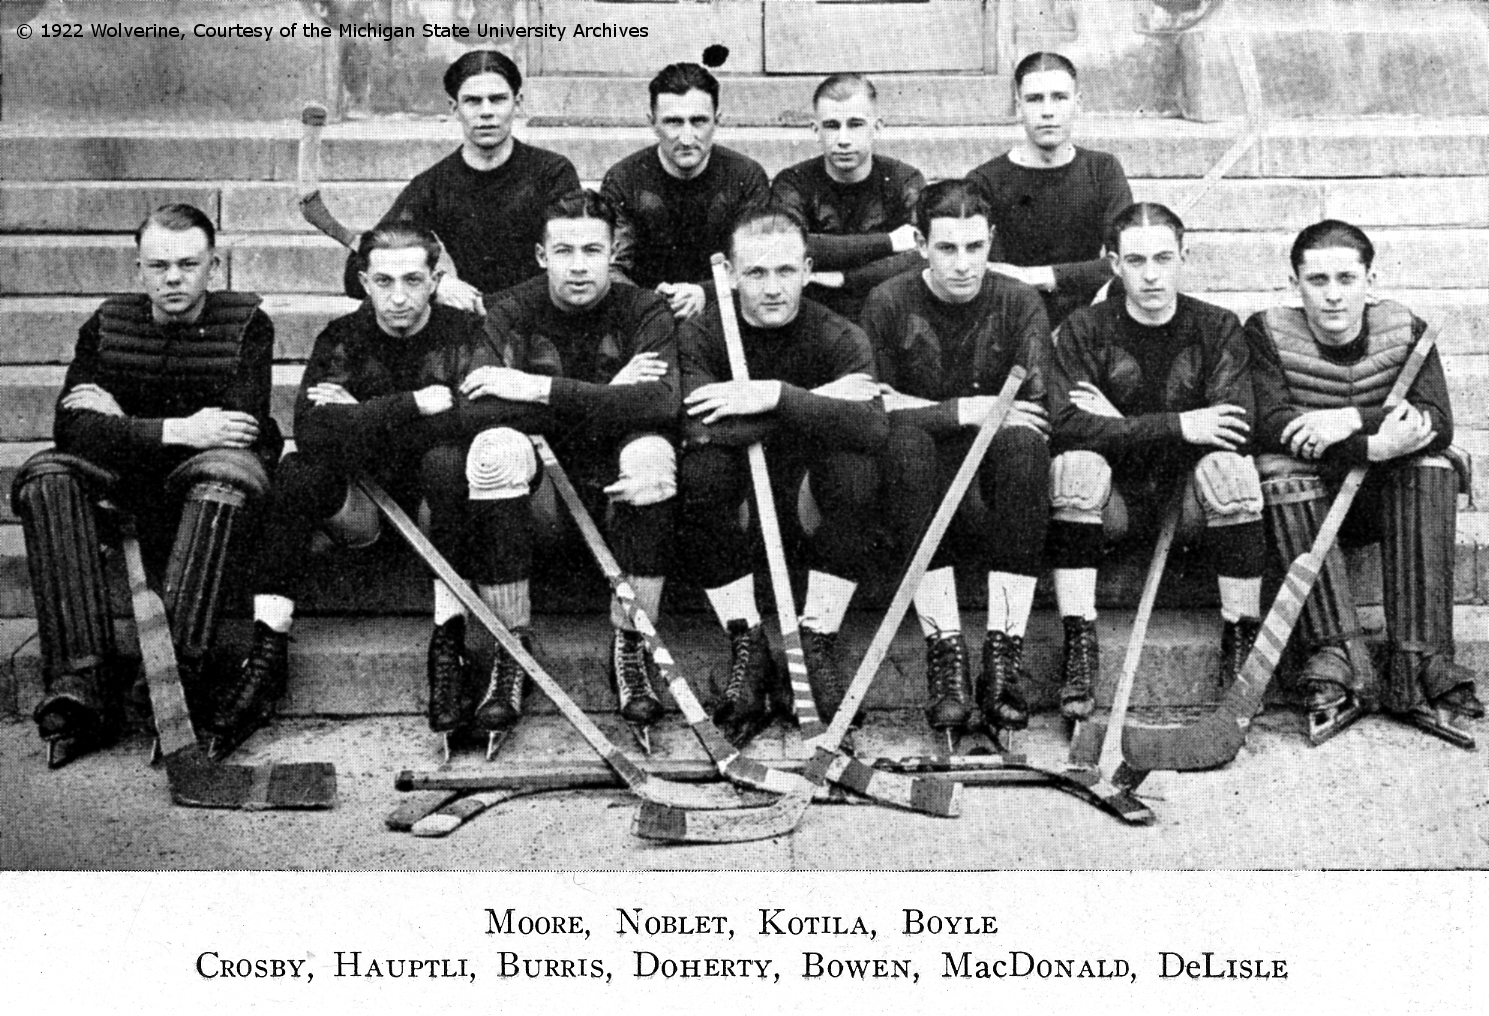 the origin of hockey The nhl hockey history actually begins with the nha's beginning in 1910 based in canada the eastern canada hockey association dated back from 1906 and from the first recognized hockey league called the ahac (amateur hockey association of canada).